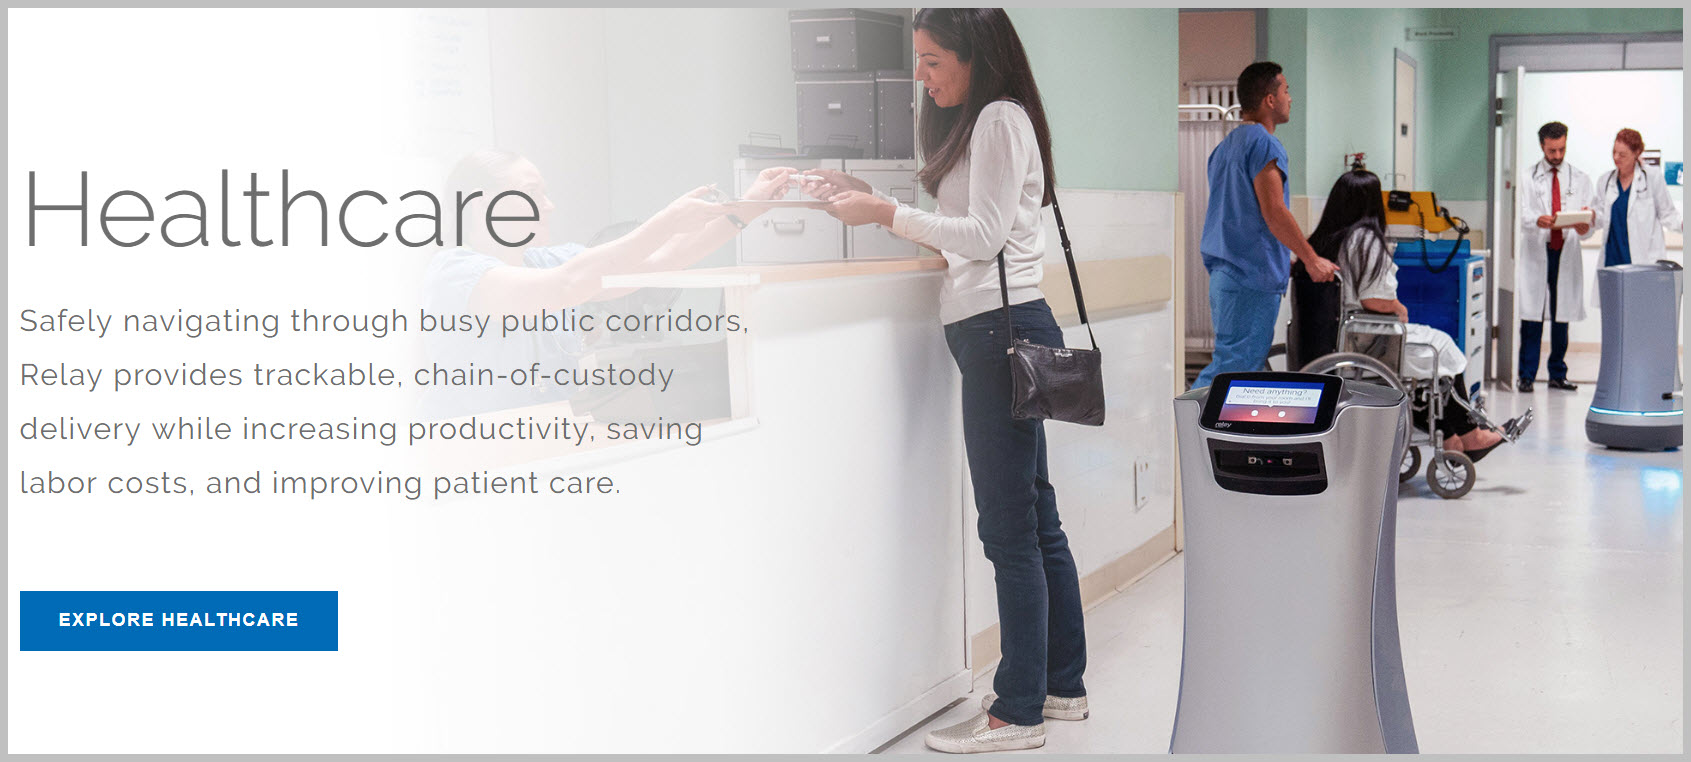 Safely navigating through busy public corridors, Relay provides trackable, chain-of-custody delivery while increasing productivity, saving labor costs, and improving patient care.